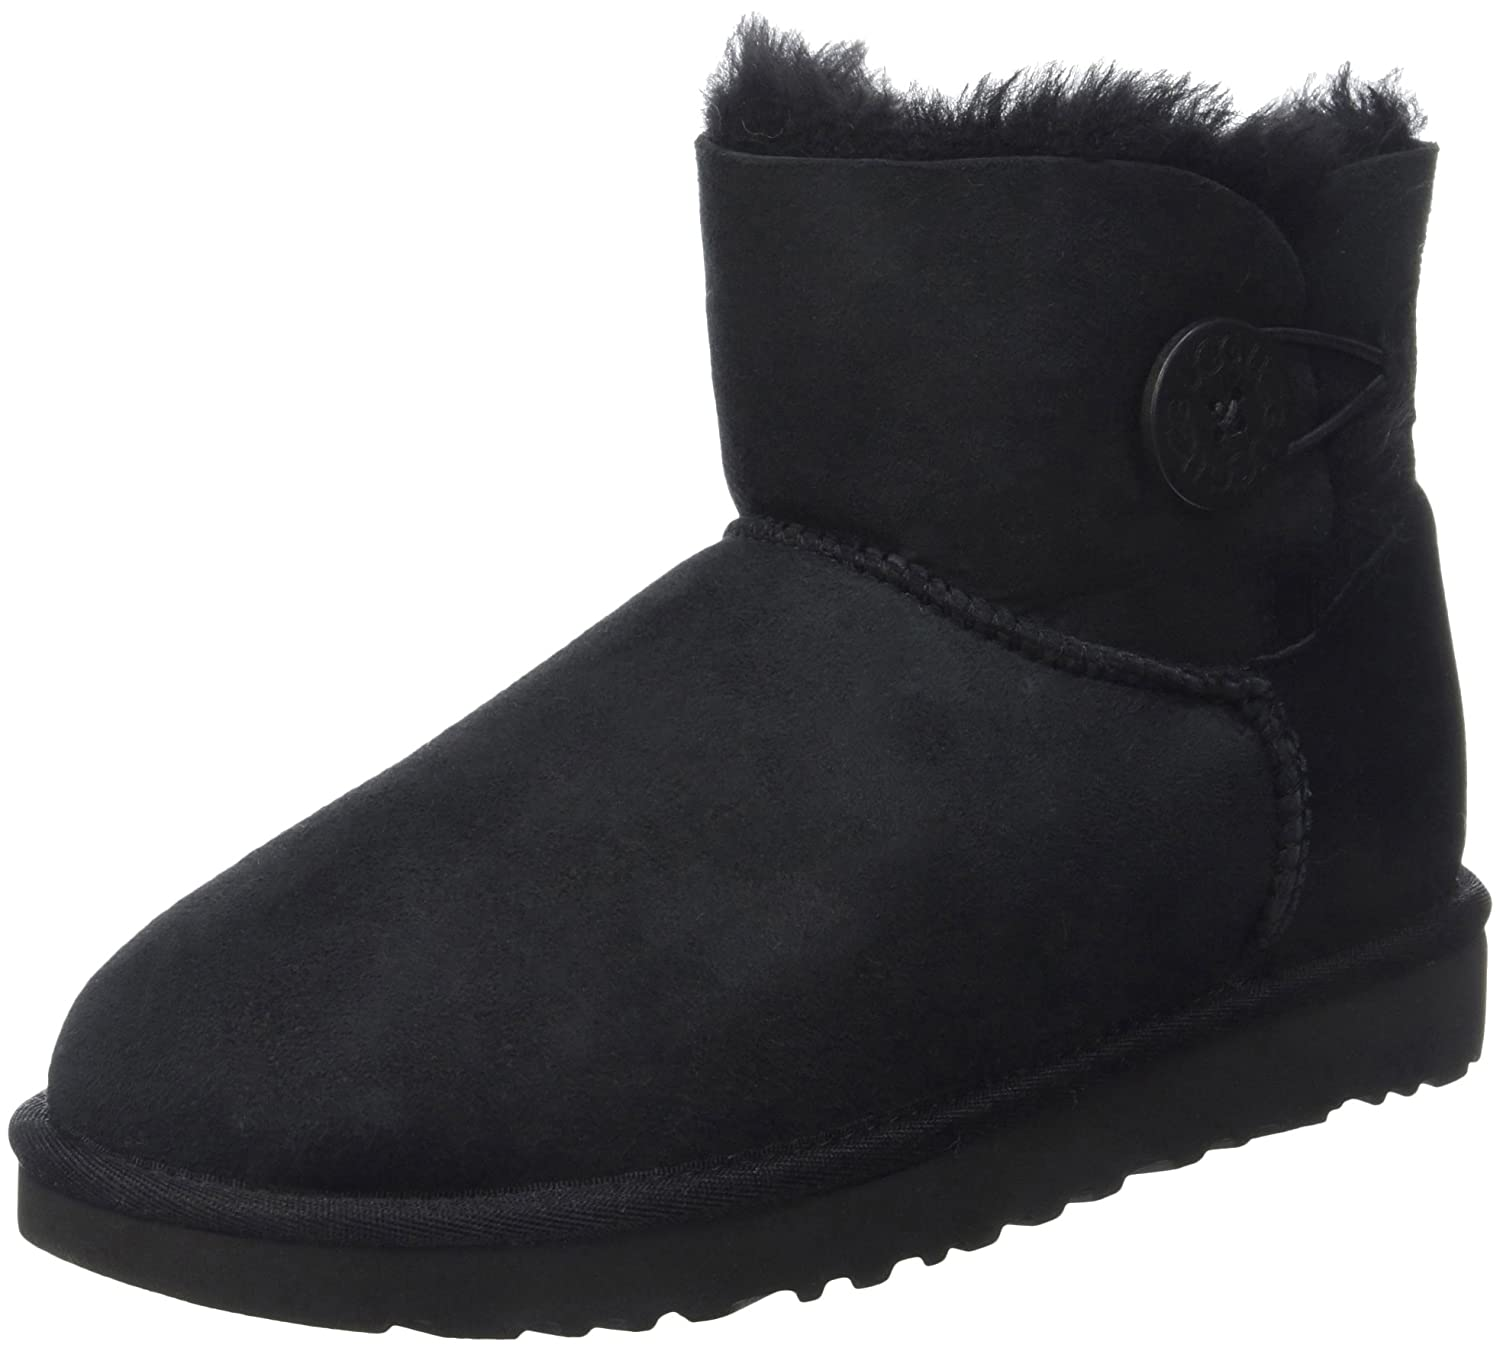 f14f361ccc9 UGG Australia Women's Mini Bailey Button Short Boots